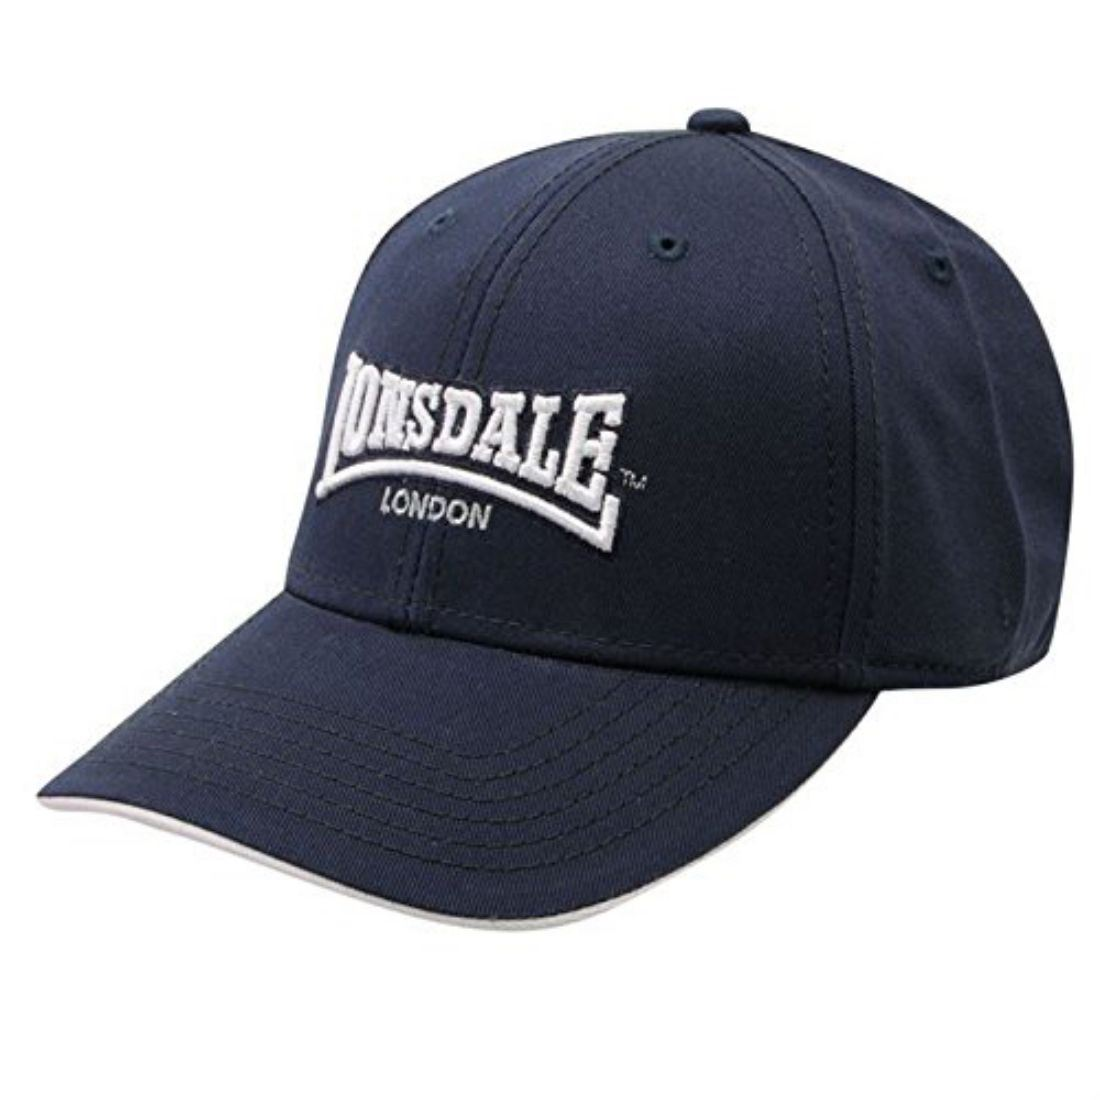 Lonsdale Mens Classic Cap Hat Casual Fashion Stylish ...